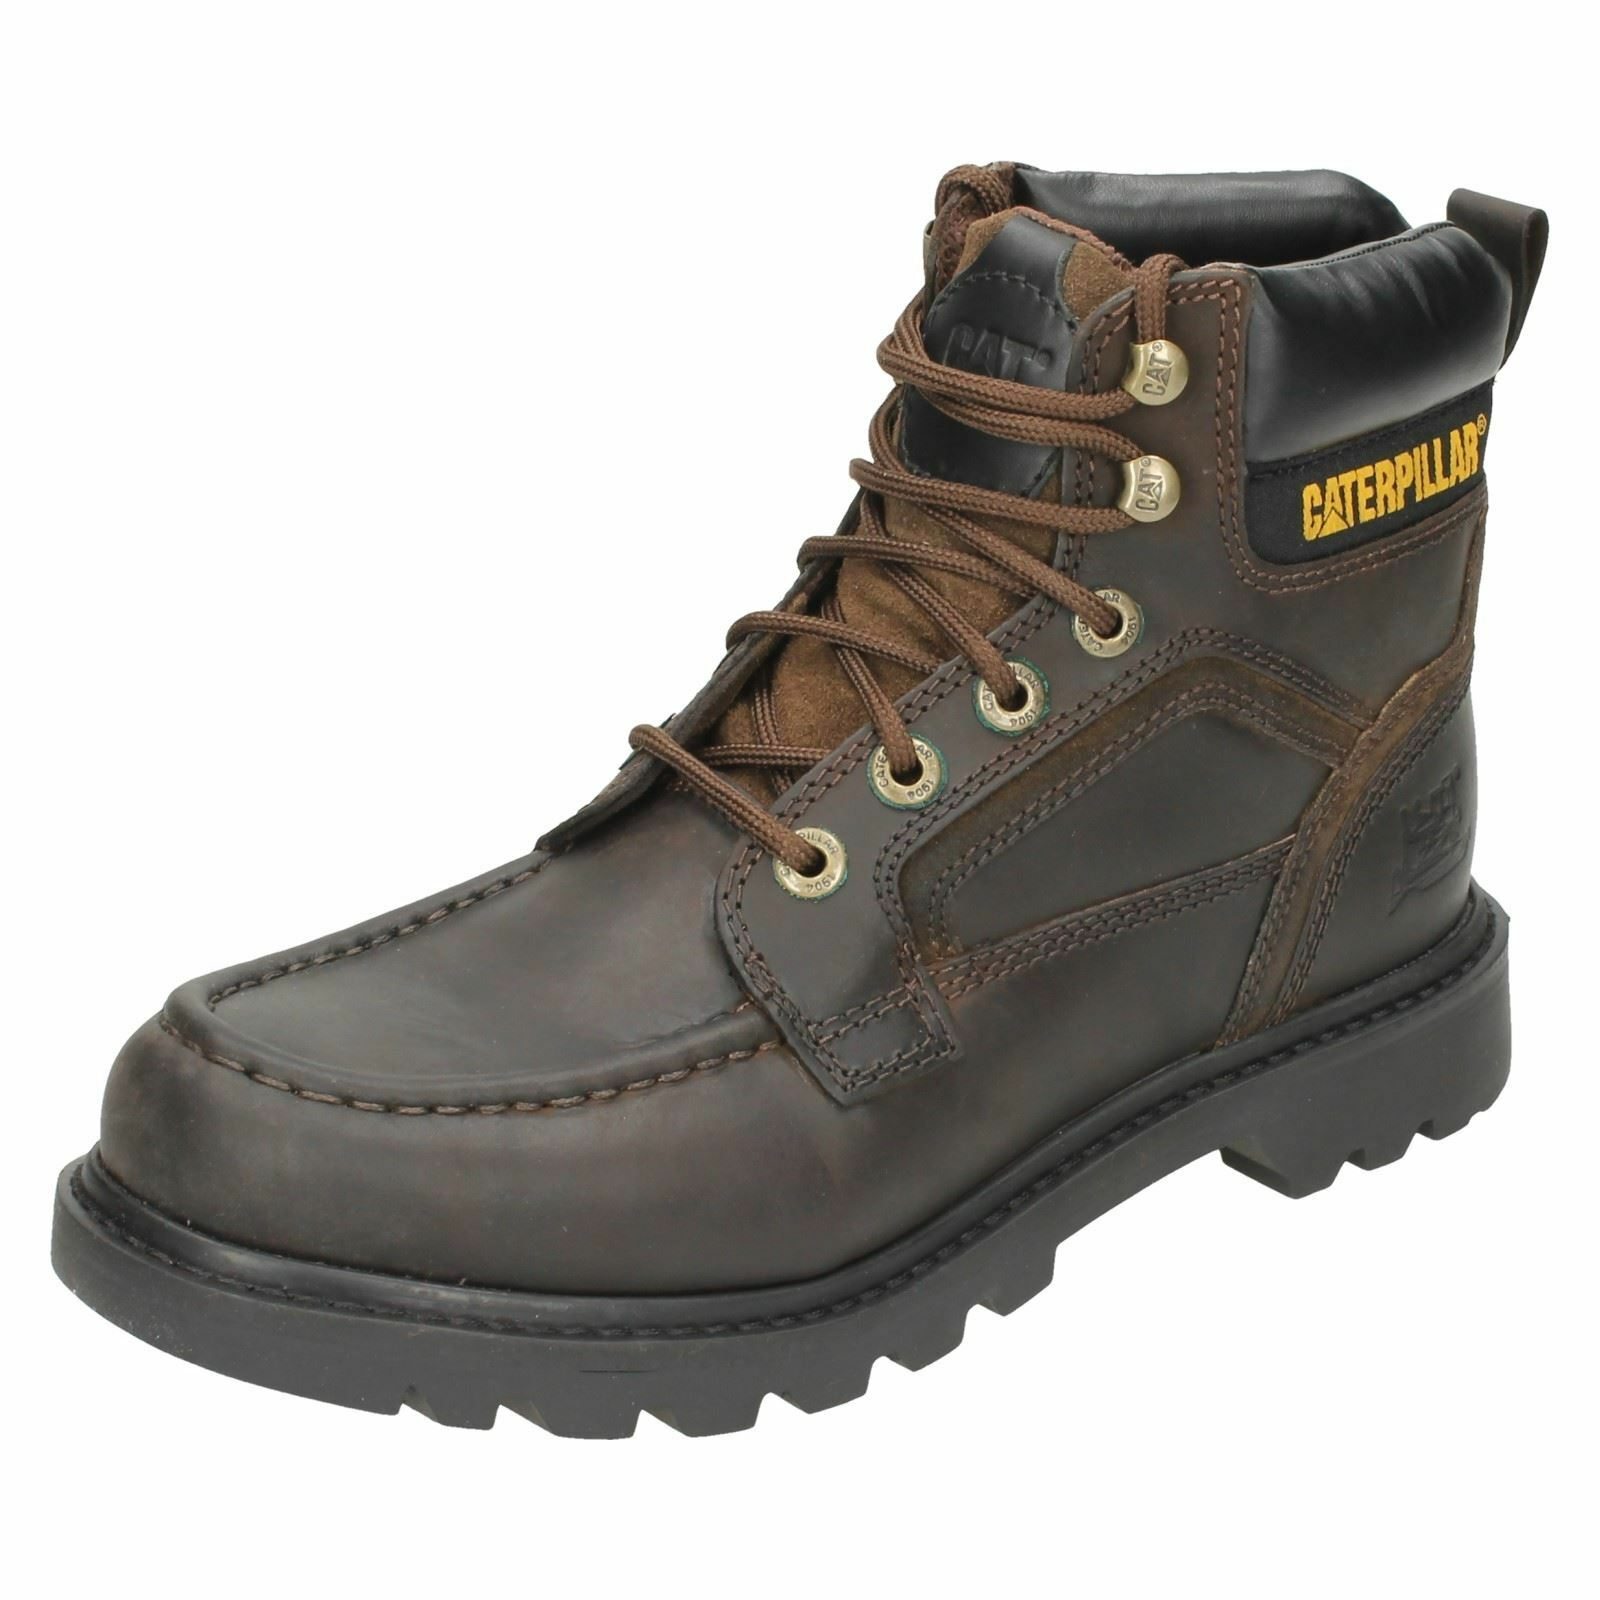 Men's TRANSPOSE boots Brown leather lace up boots  by CATERPILLAR Price 59.99